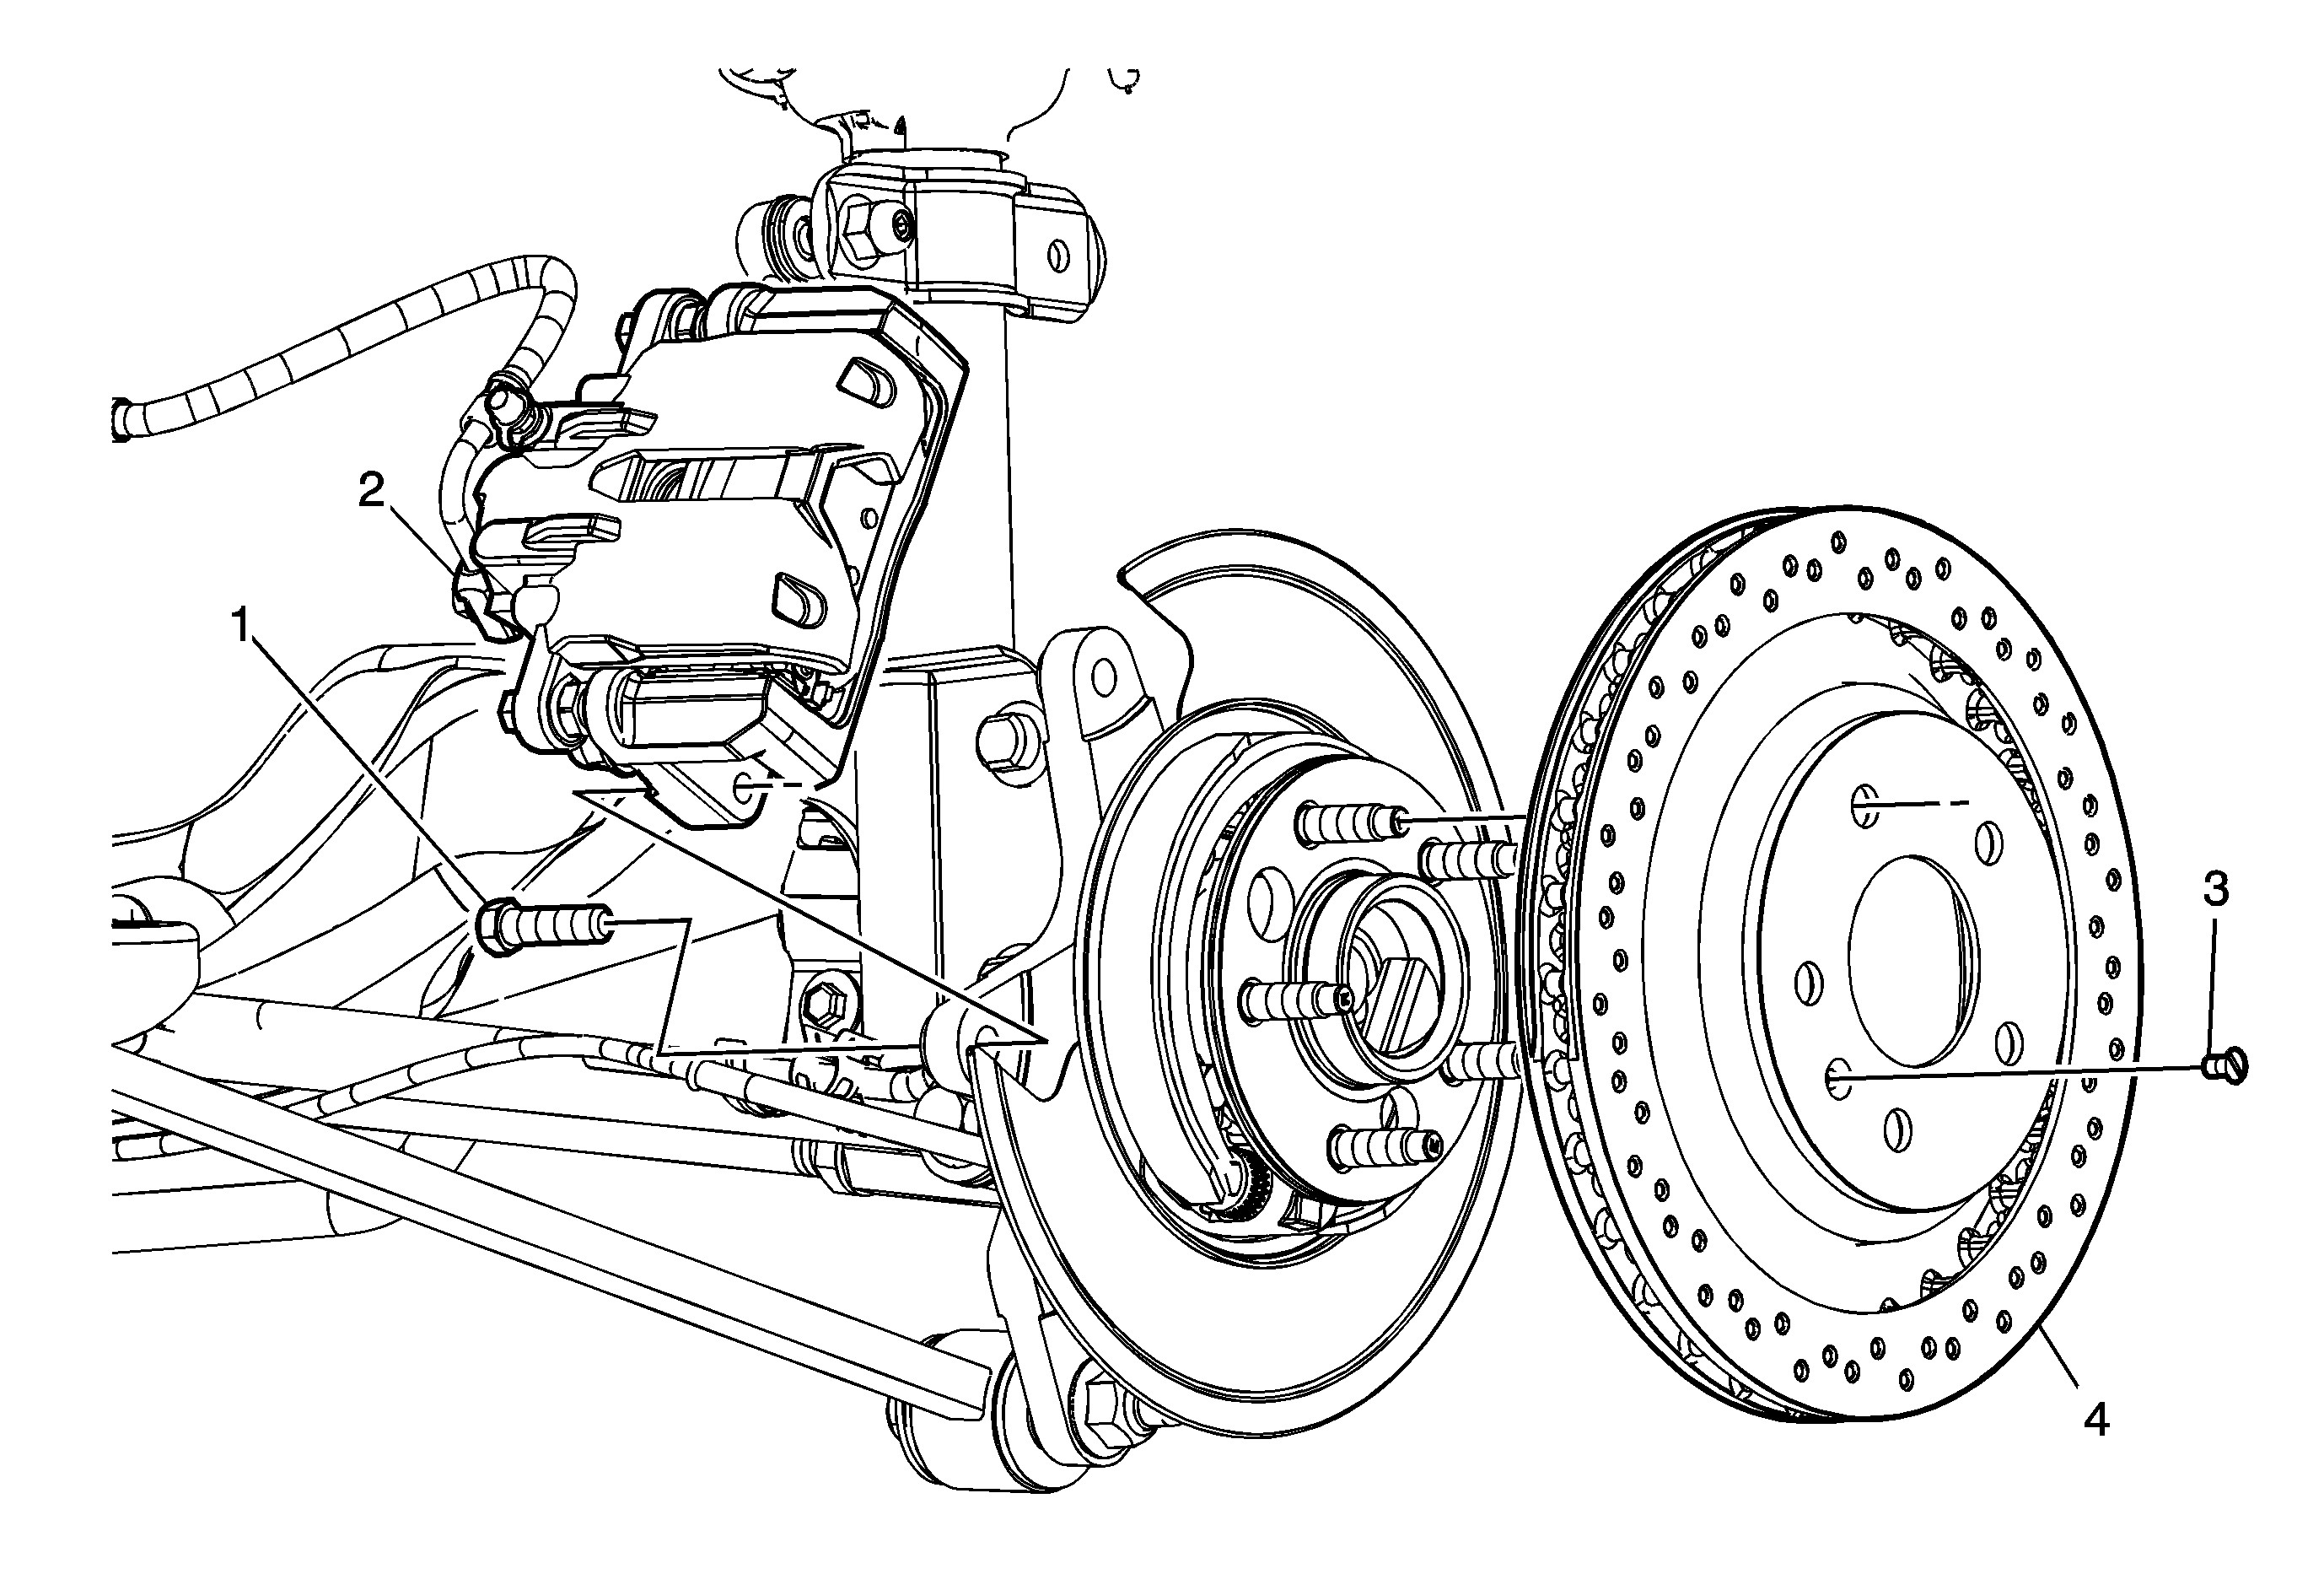 2006 Grand Prix Engine Diagram Repair Instructions Rear Brake Rotor Replacement Jl9 with Z7u Of 2006 Grand Prix Engine Diagram